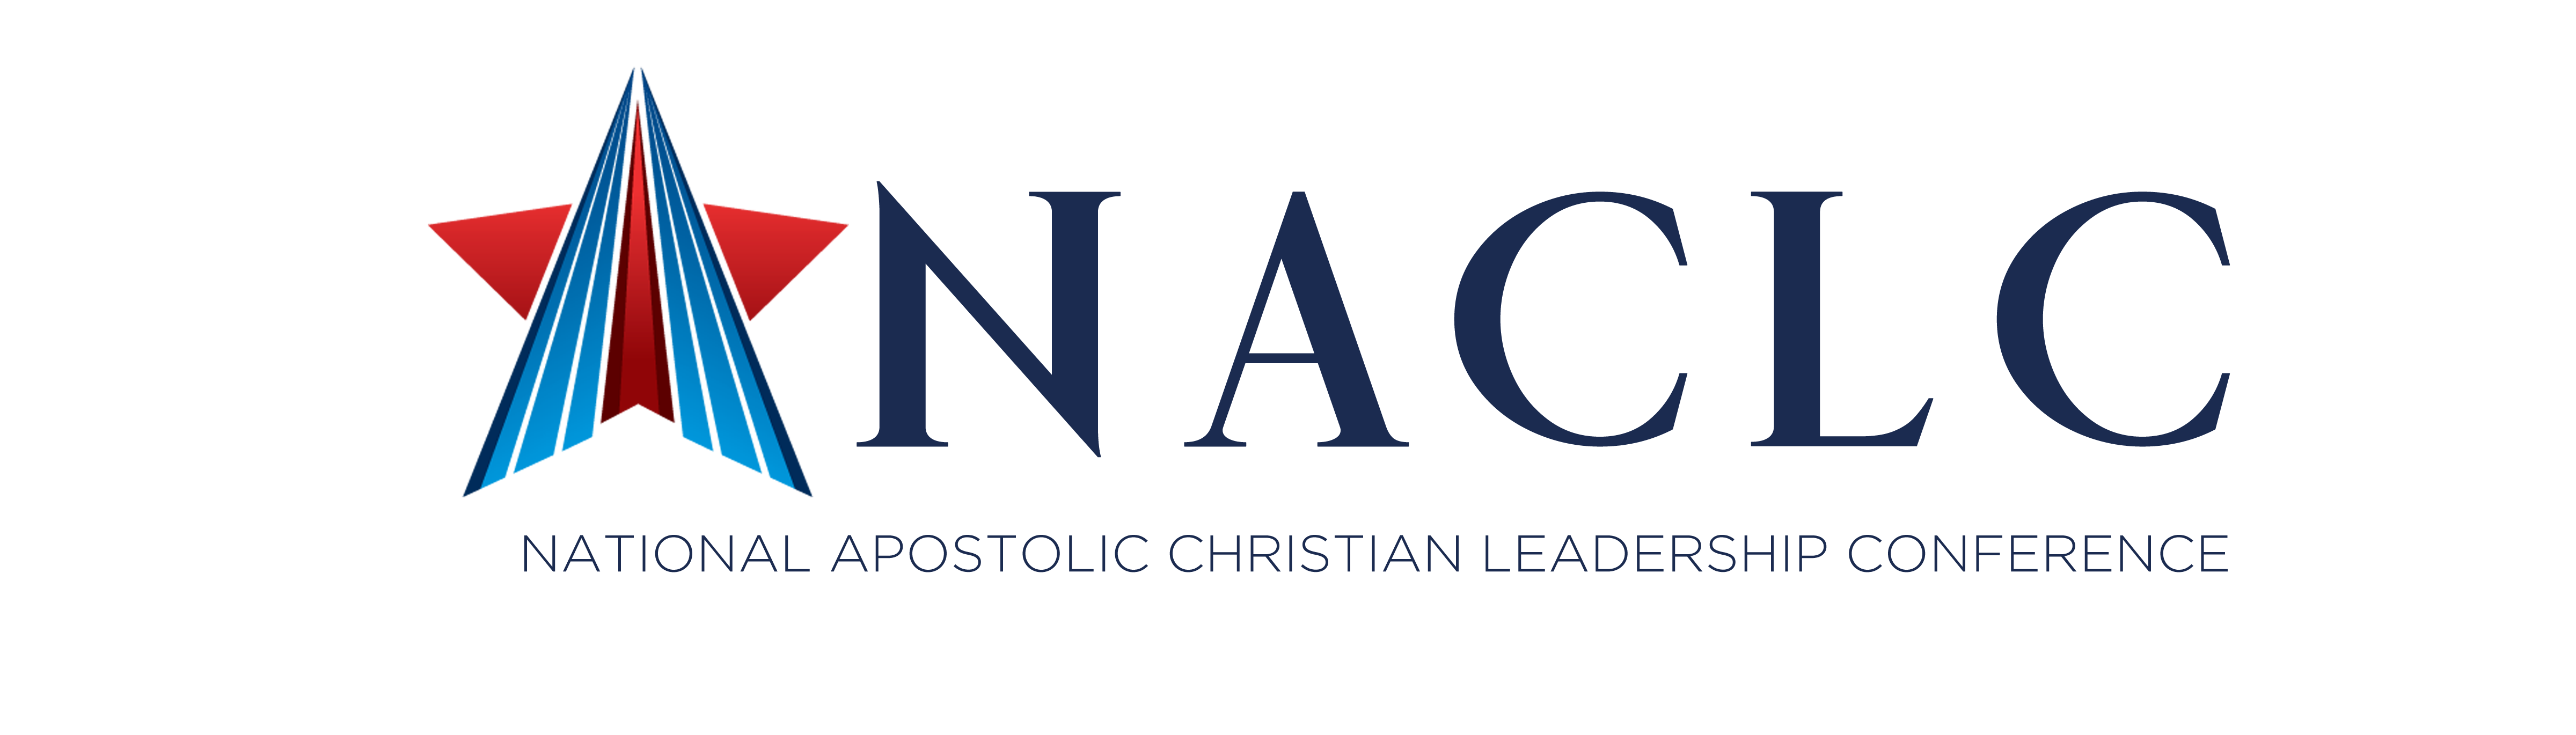 NACLC Organization Annual Membership (Up to $500K)